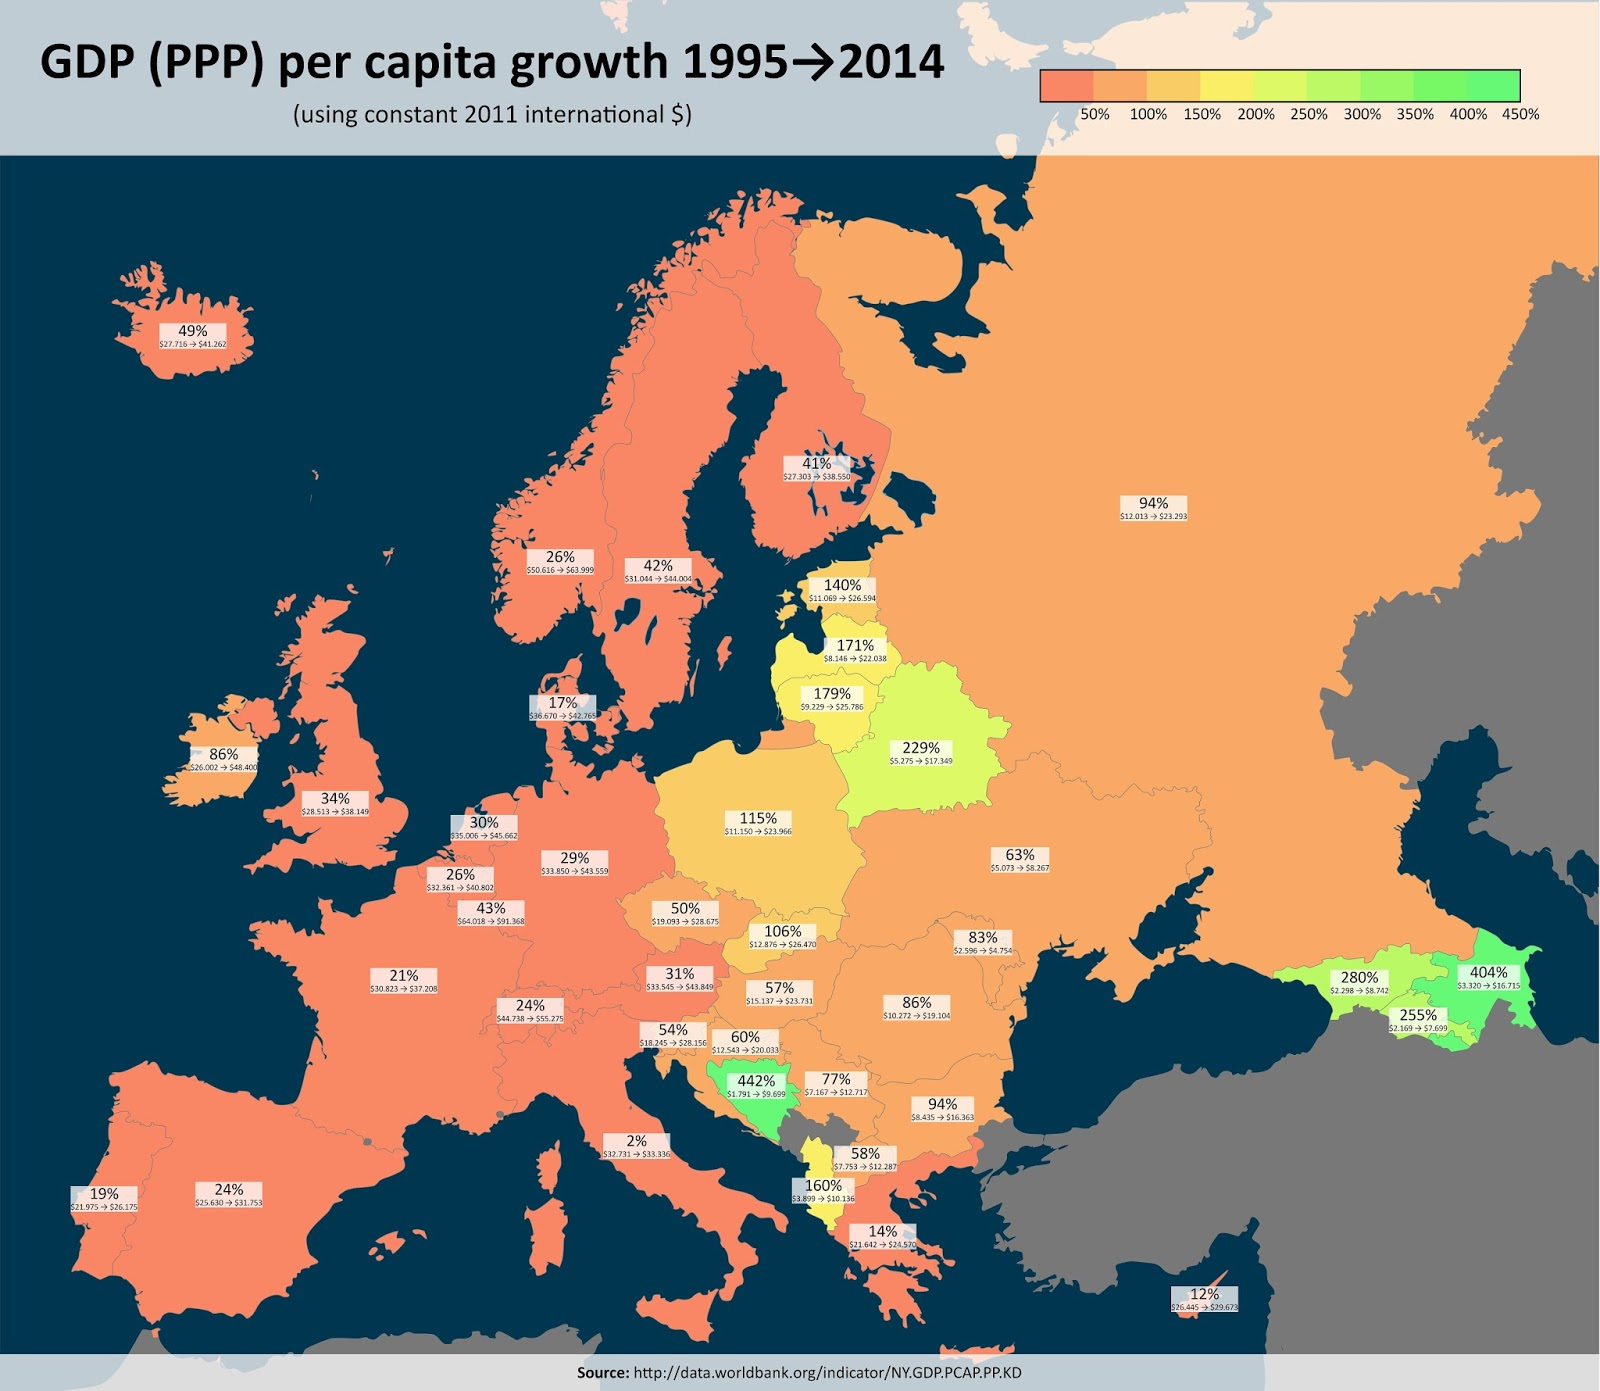 GDP (PPP) per capita growth from 1995 to 2014